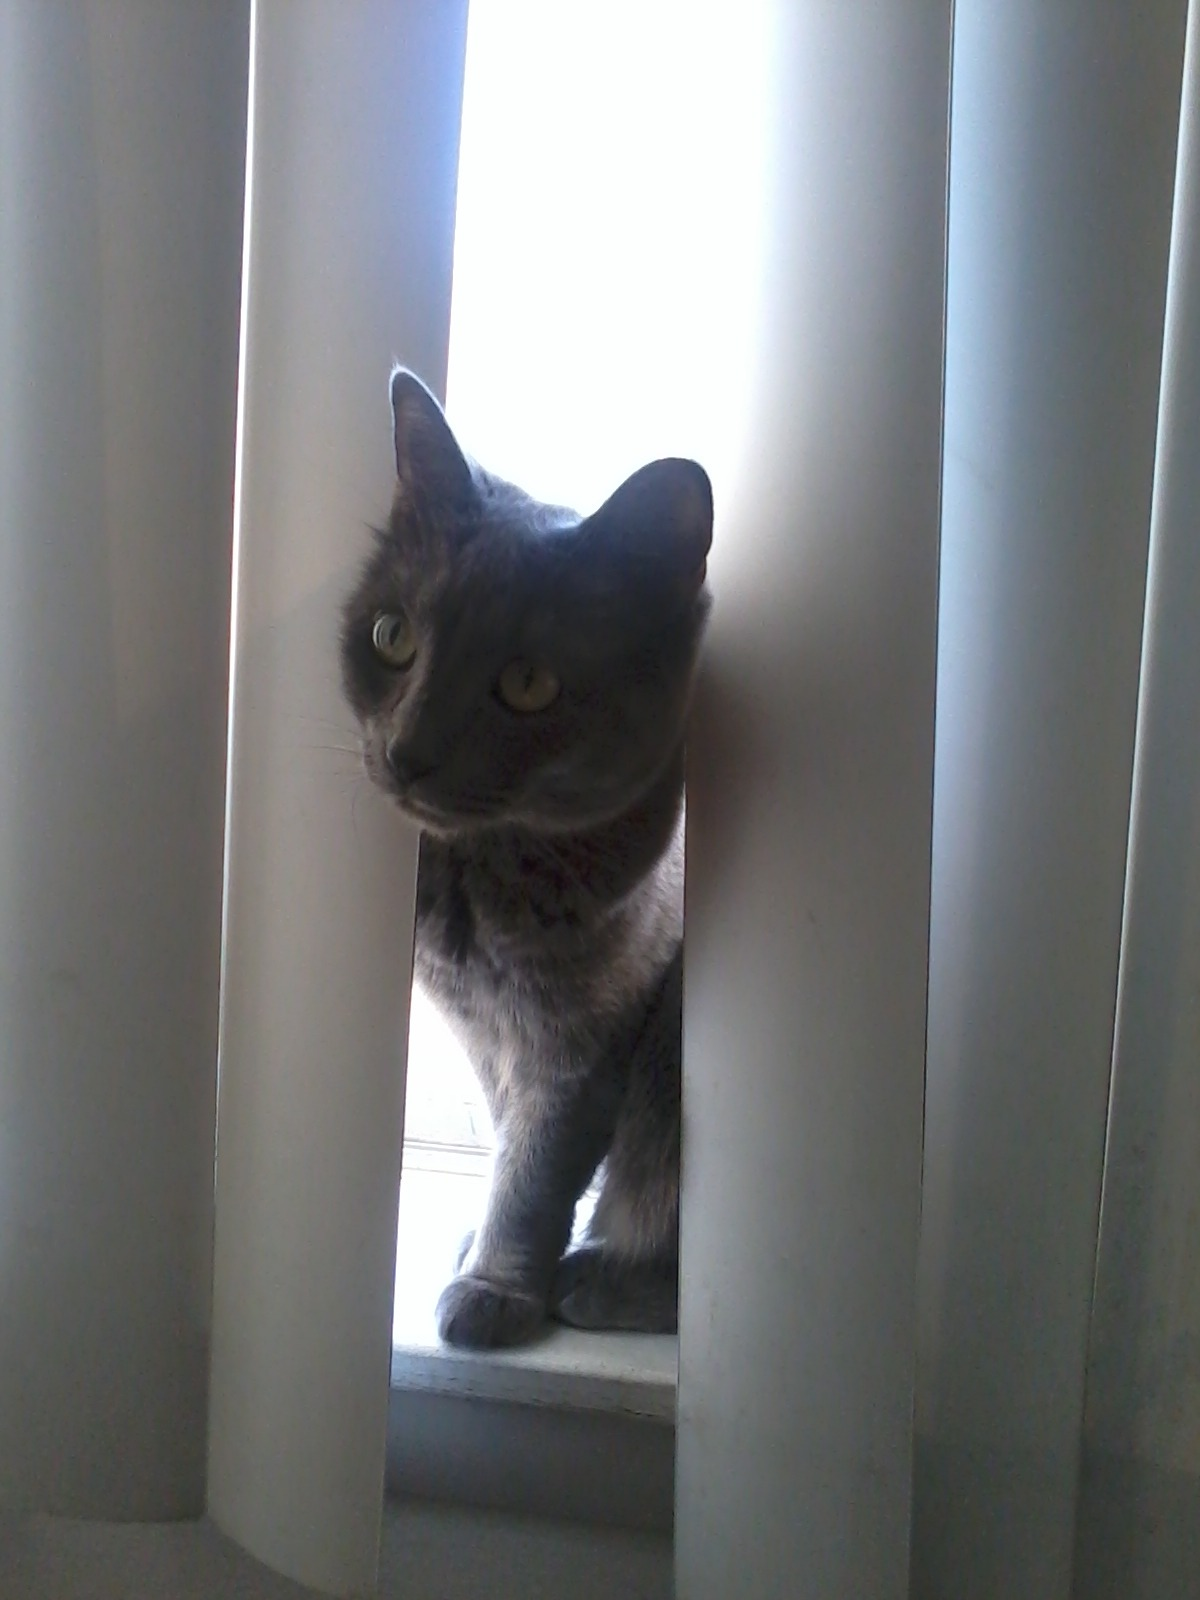 The photo of the day is Smokey.  She is looking through the blinds into the apartment.